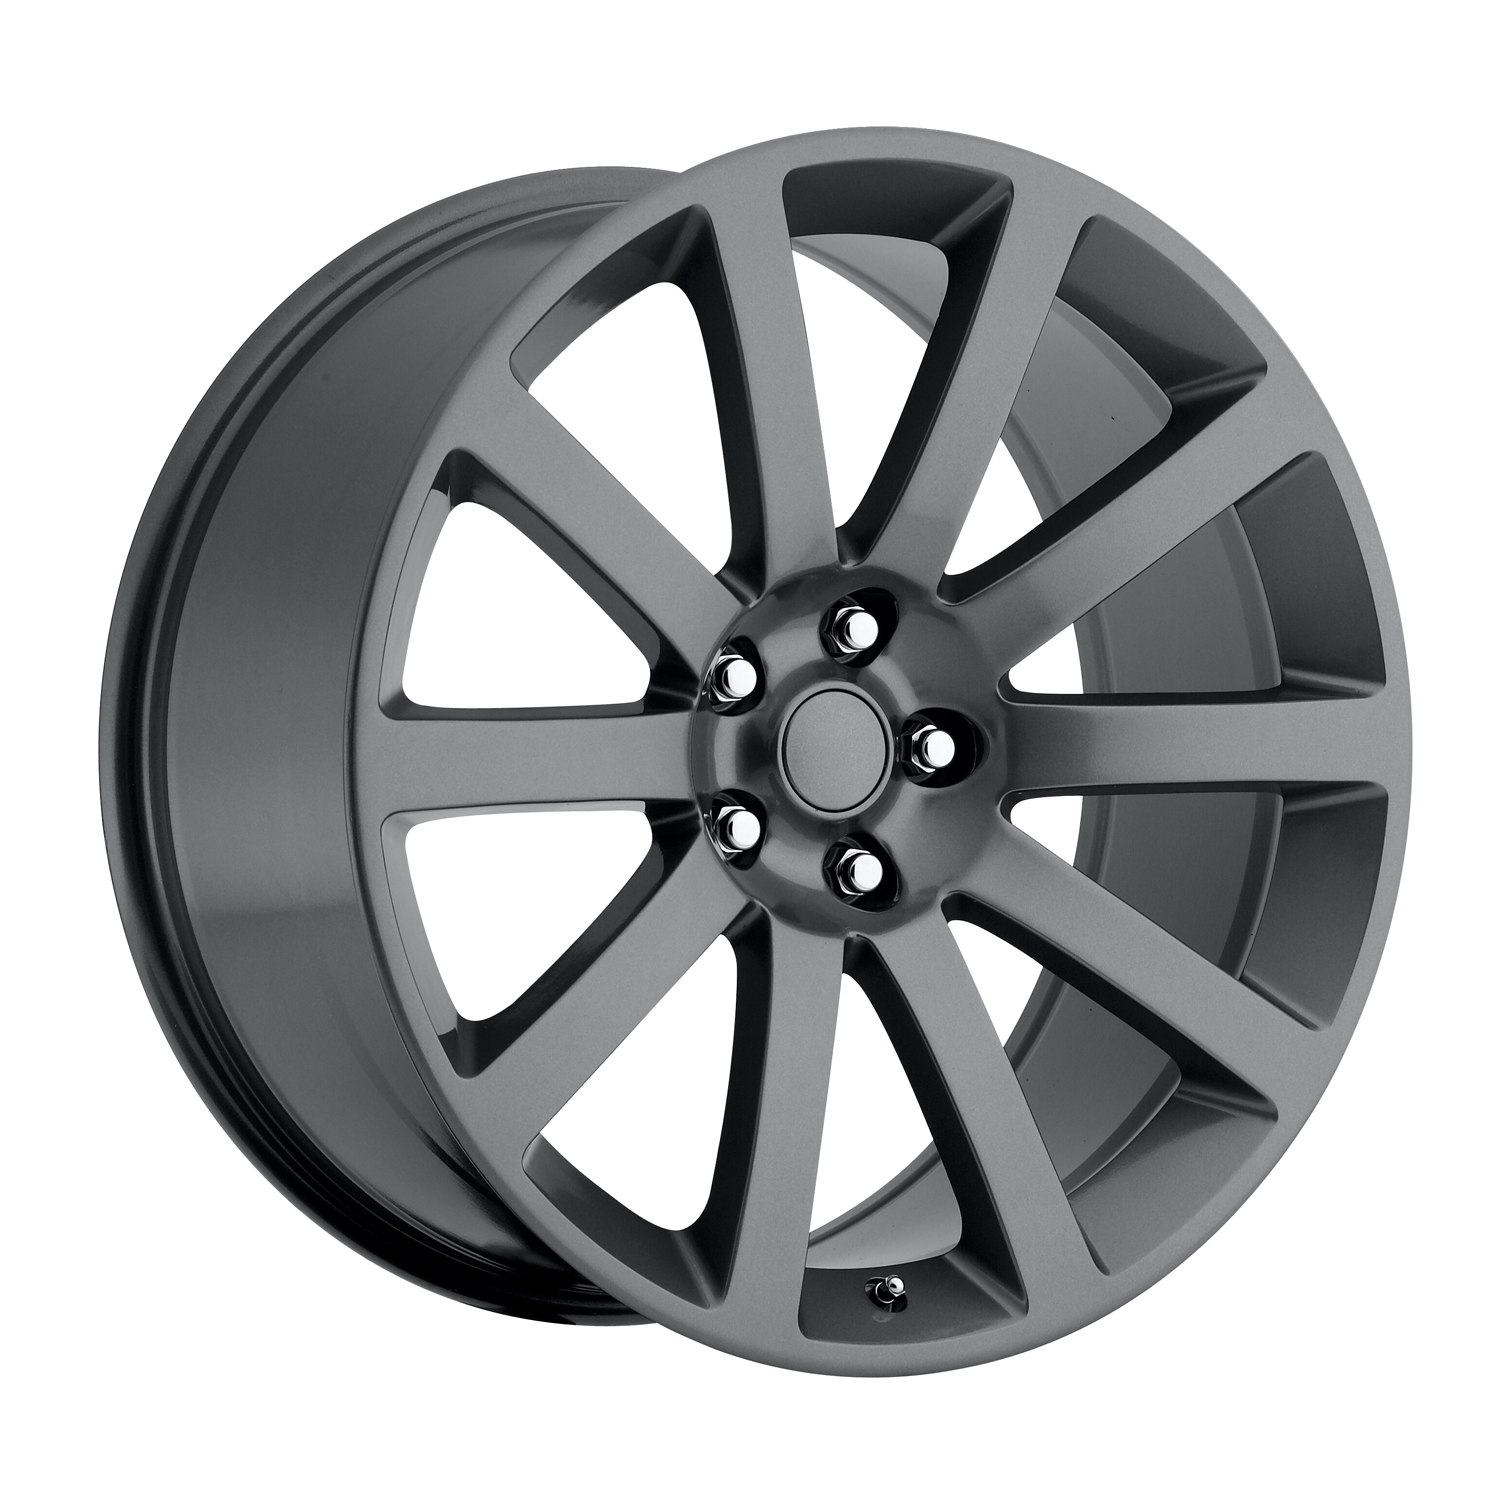 Chrysler 300C 2005-2010 22x9 5x115 +18 - SRT8 Style Wheel - Grey With Cap